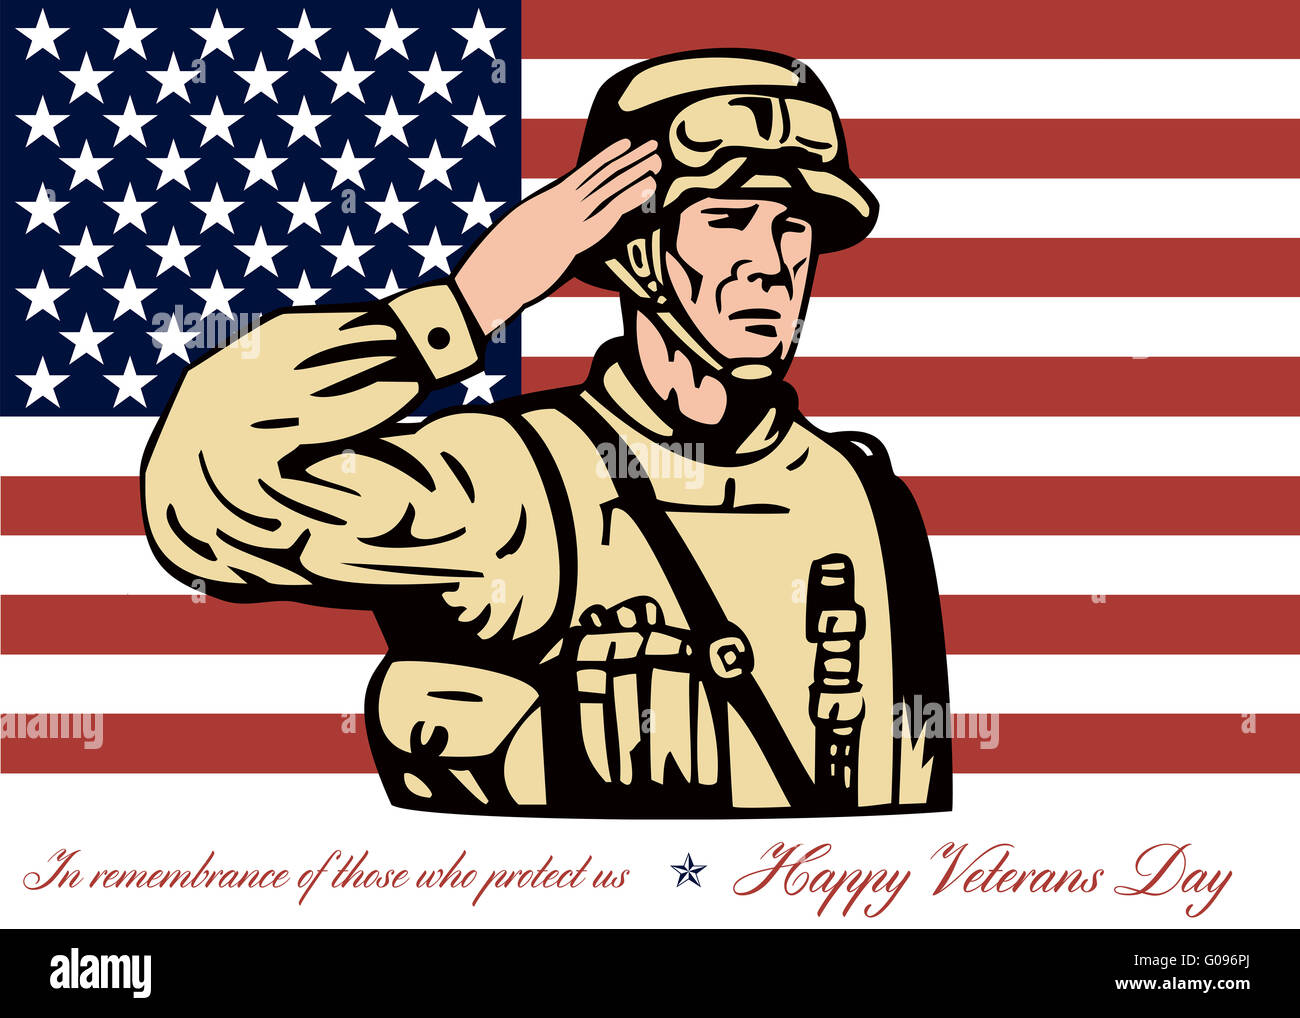 Happy veterans day greeting card soldier salute stock photo happy veterans day greeting card soldier salute m4hsunfo